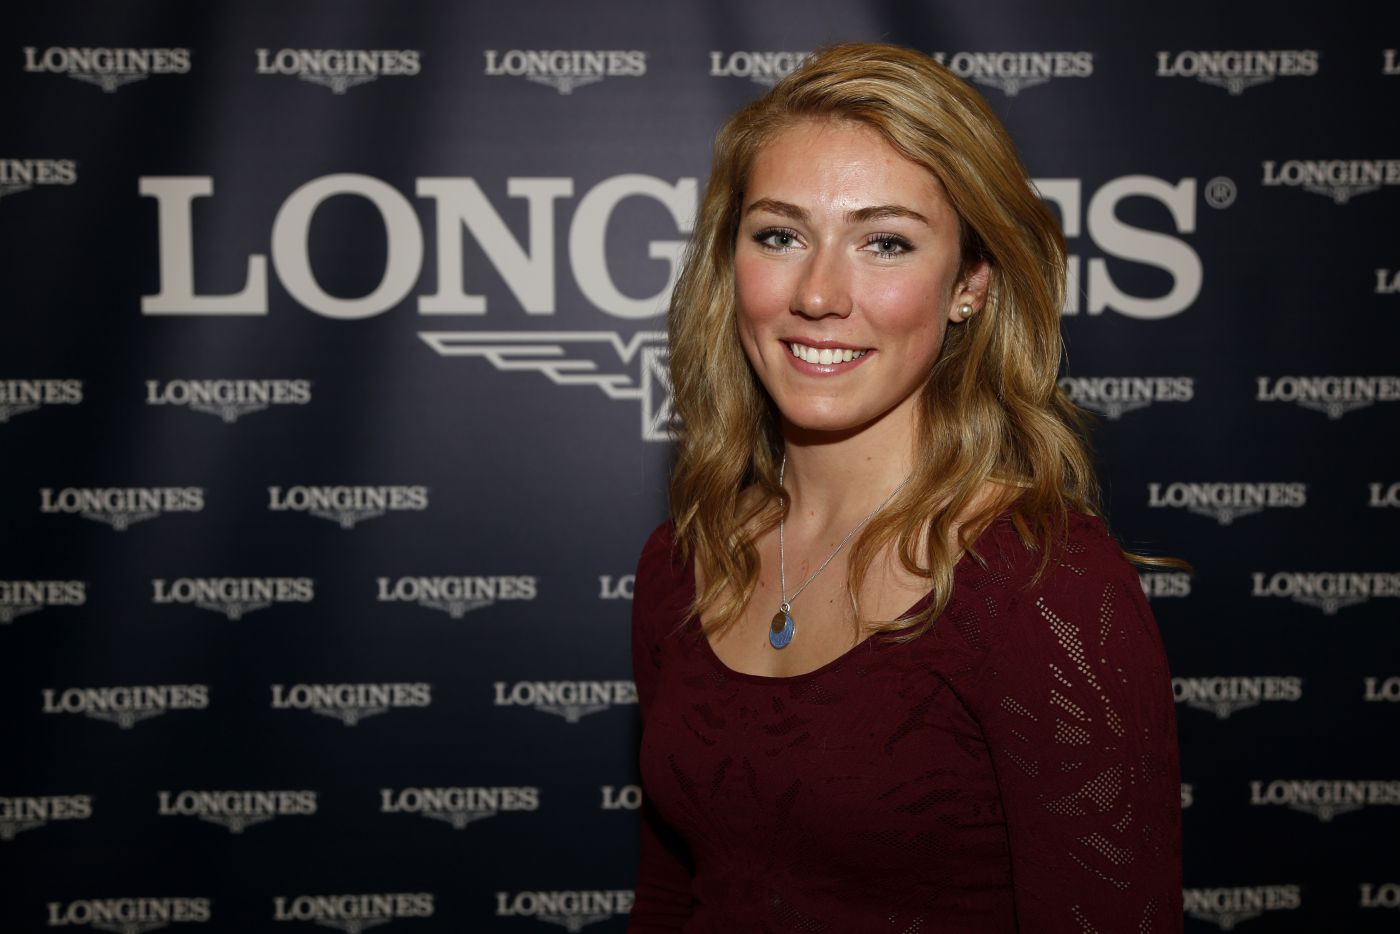 Longines Alpine Skiing Event: FIS Alpine Skiing World Cup 2014/2015 – A new season characterised by youth (Sölden, AUSTRIA)  1